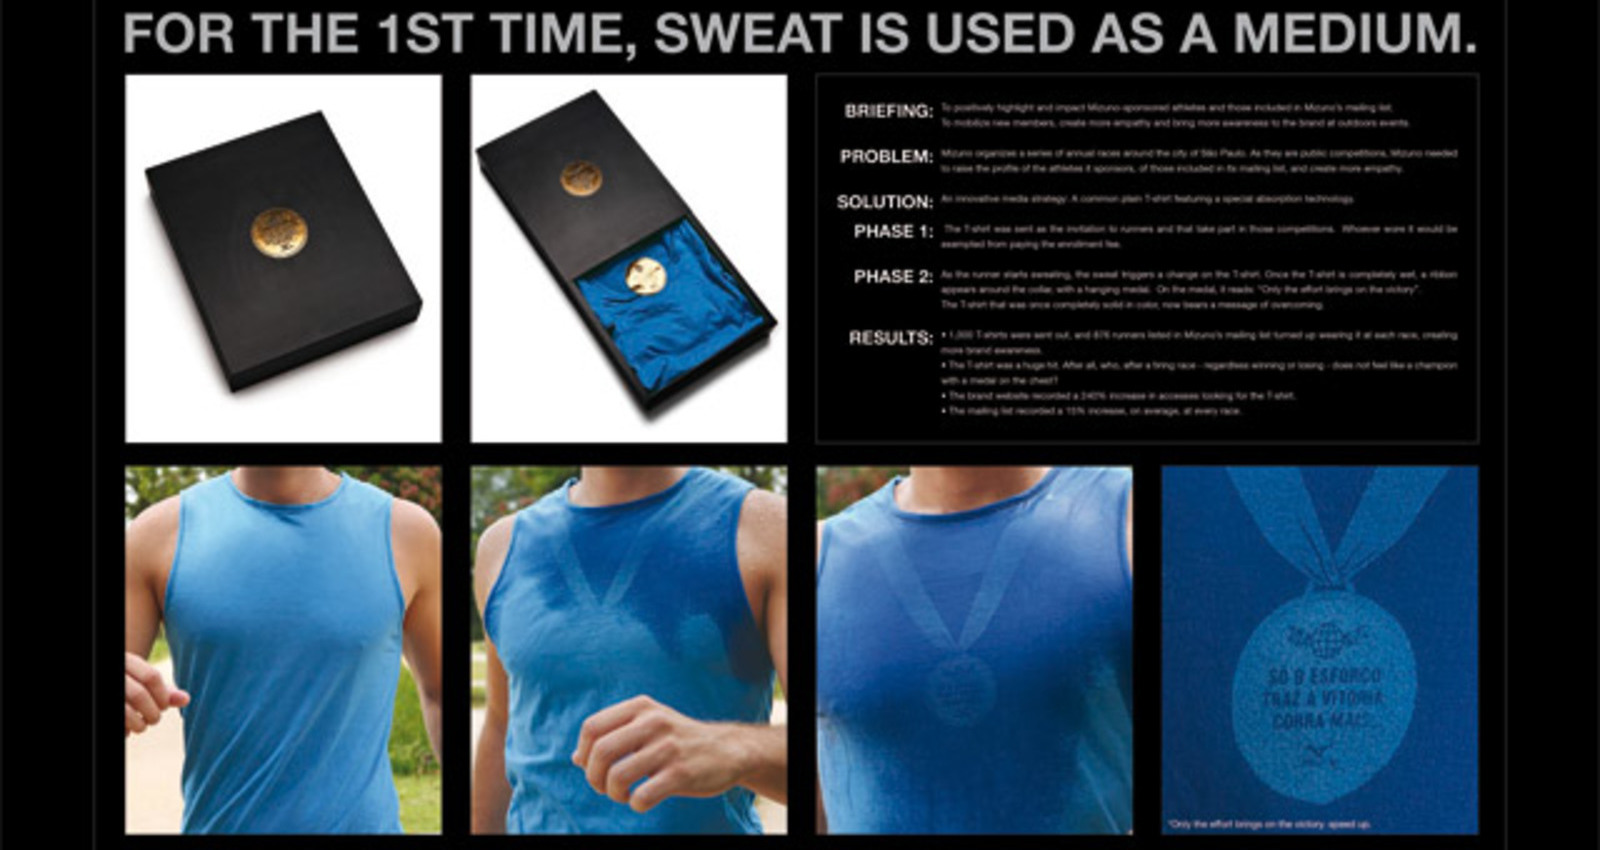 sweat is used as a medium